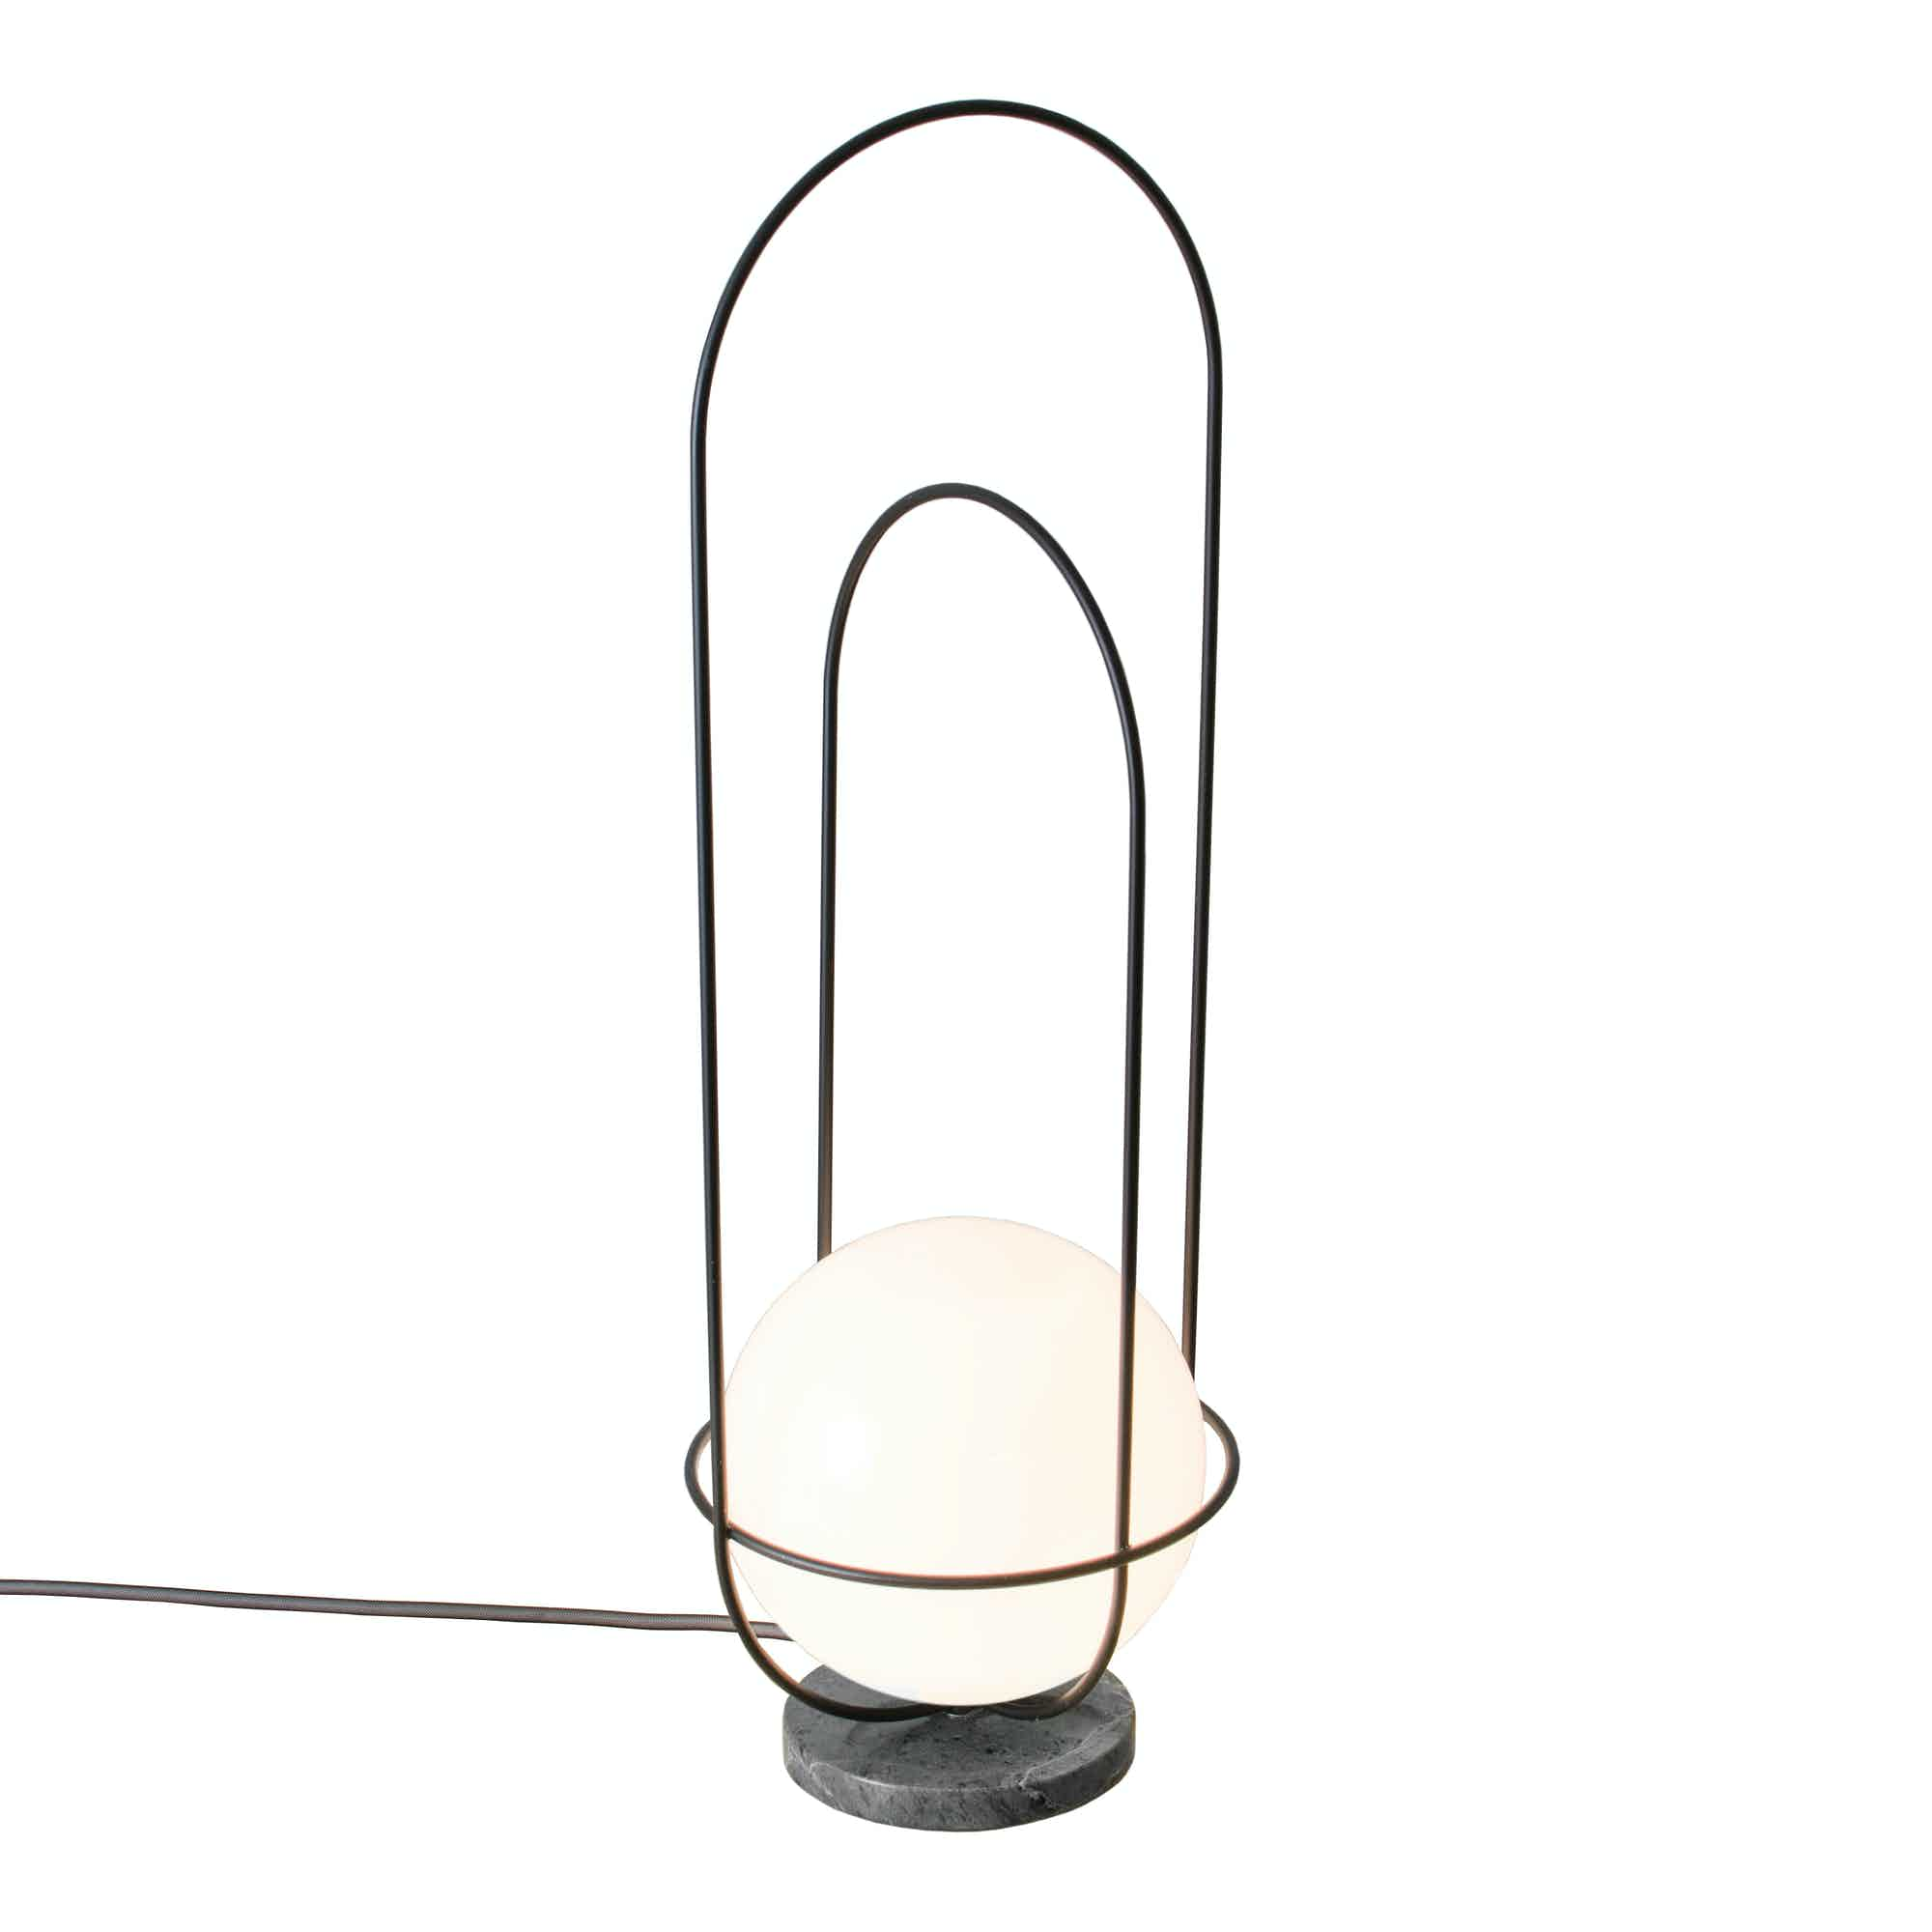 Andlight Black Orbit Table Lamp Thumbnail Haute Living